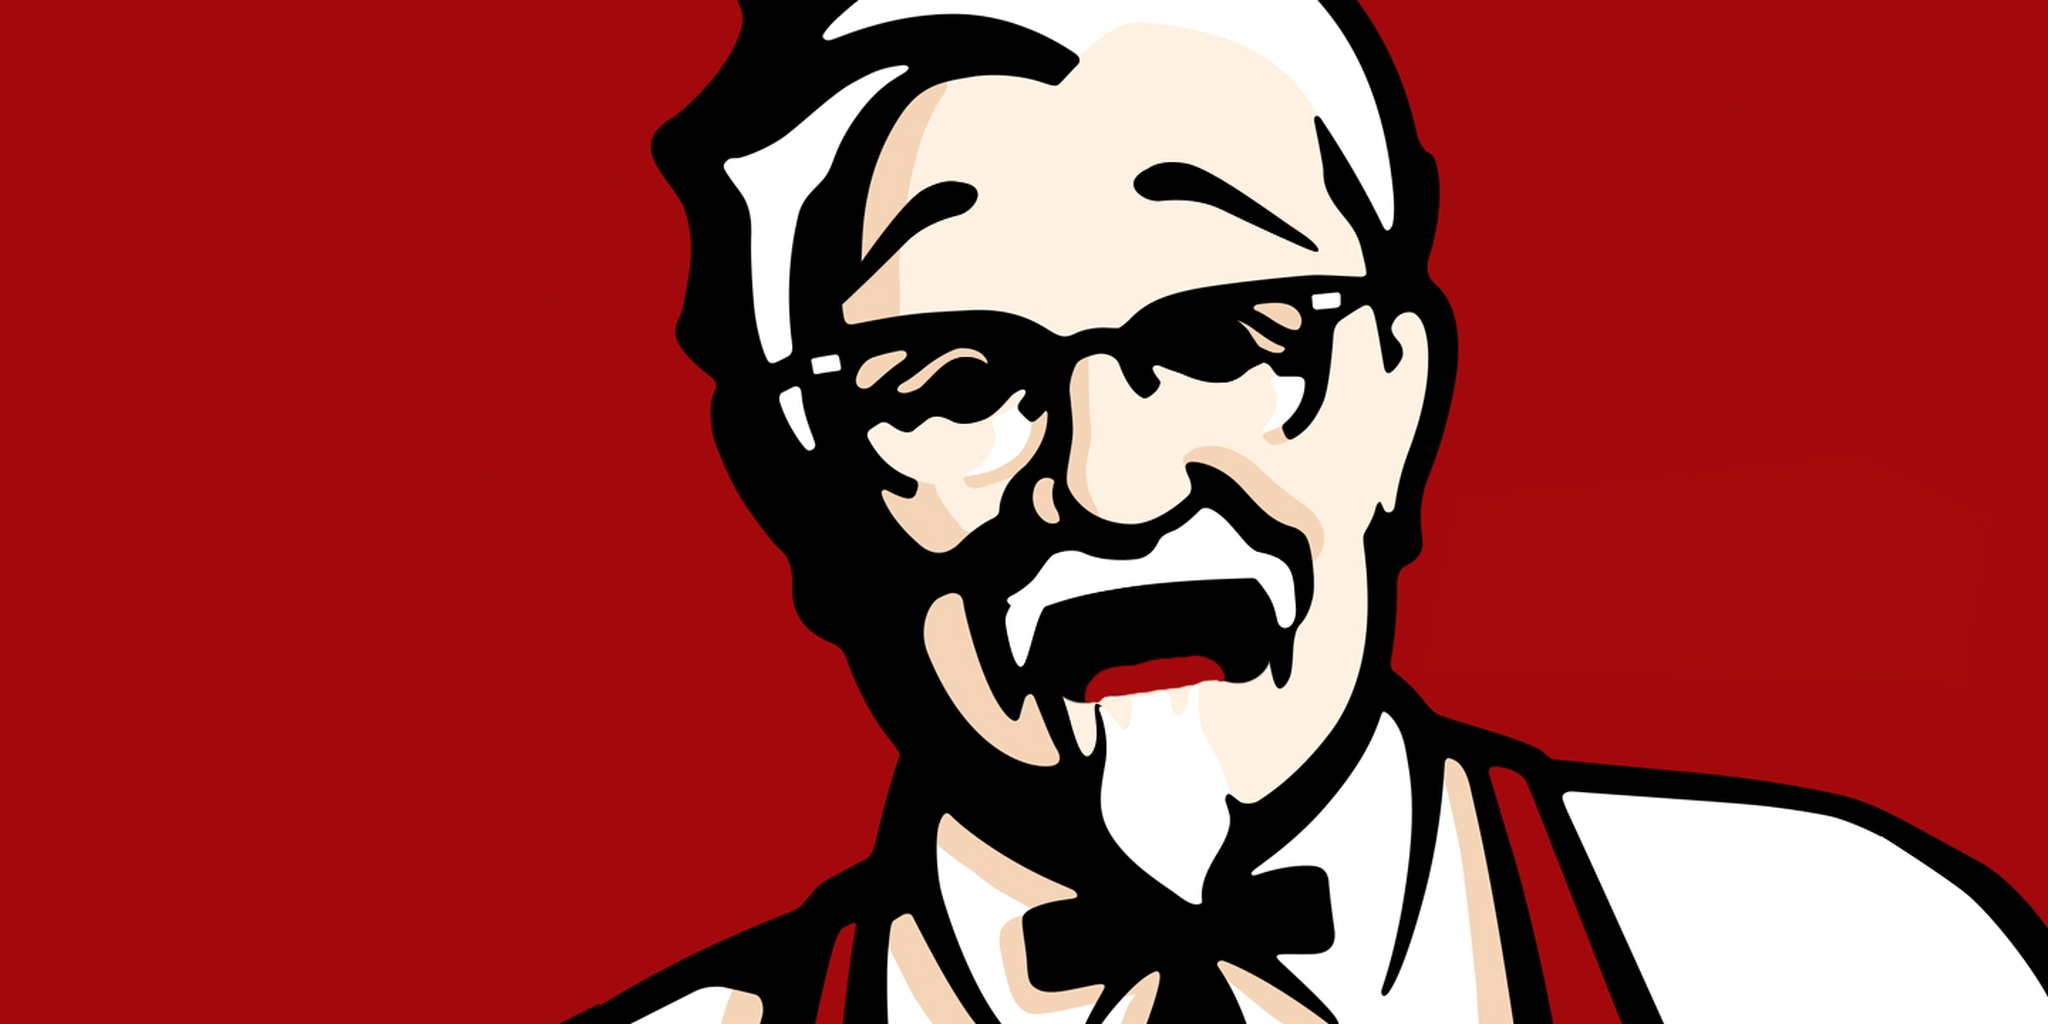 Kfc clipart mcdonalds logo Disgusting  Source There's Media